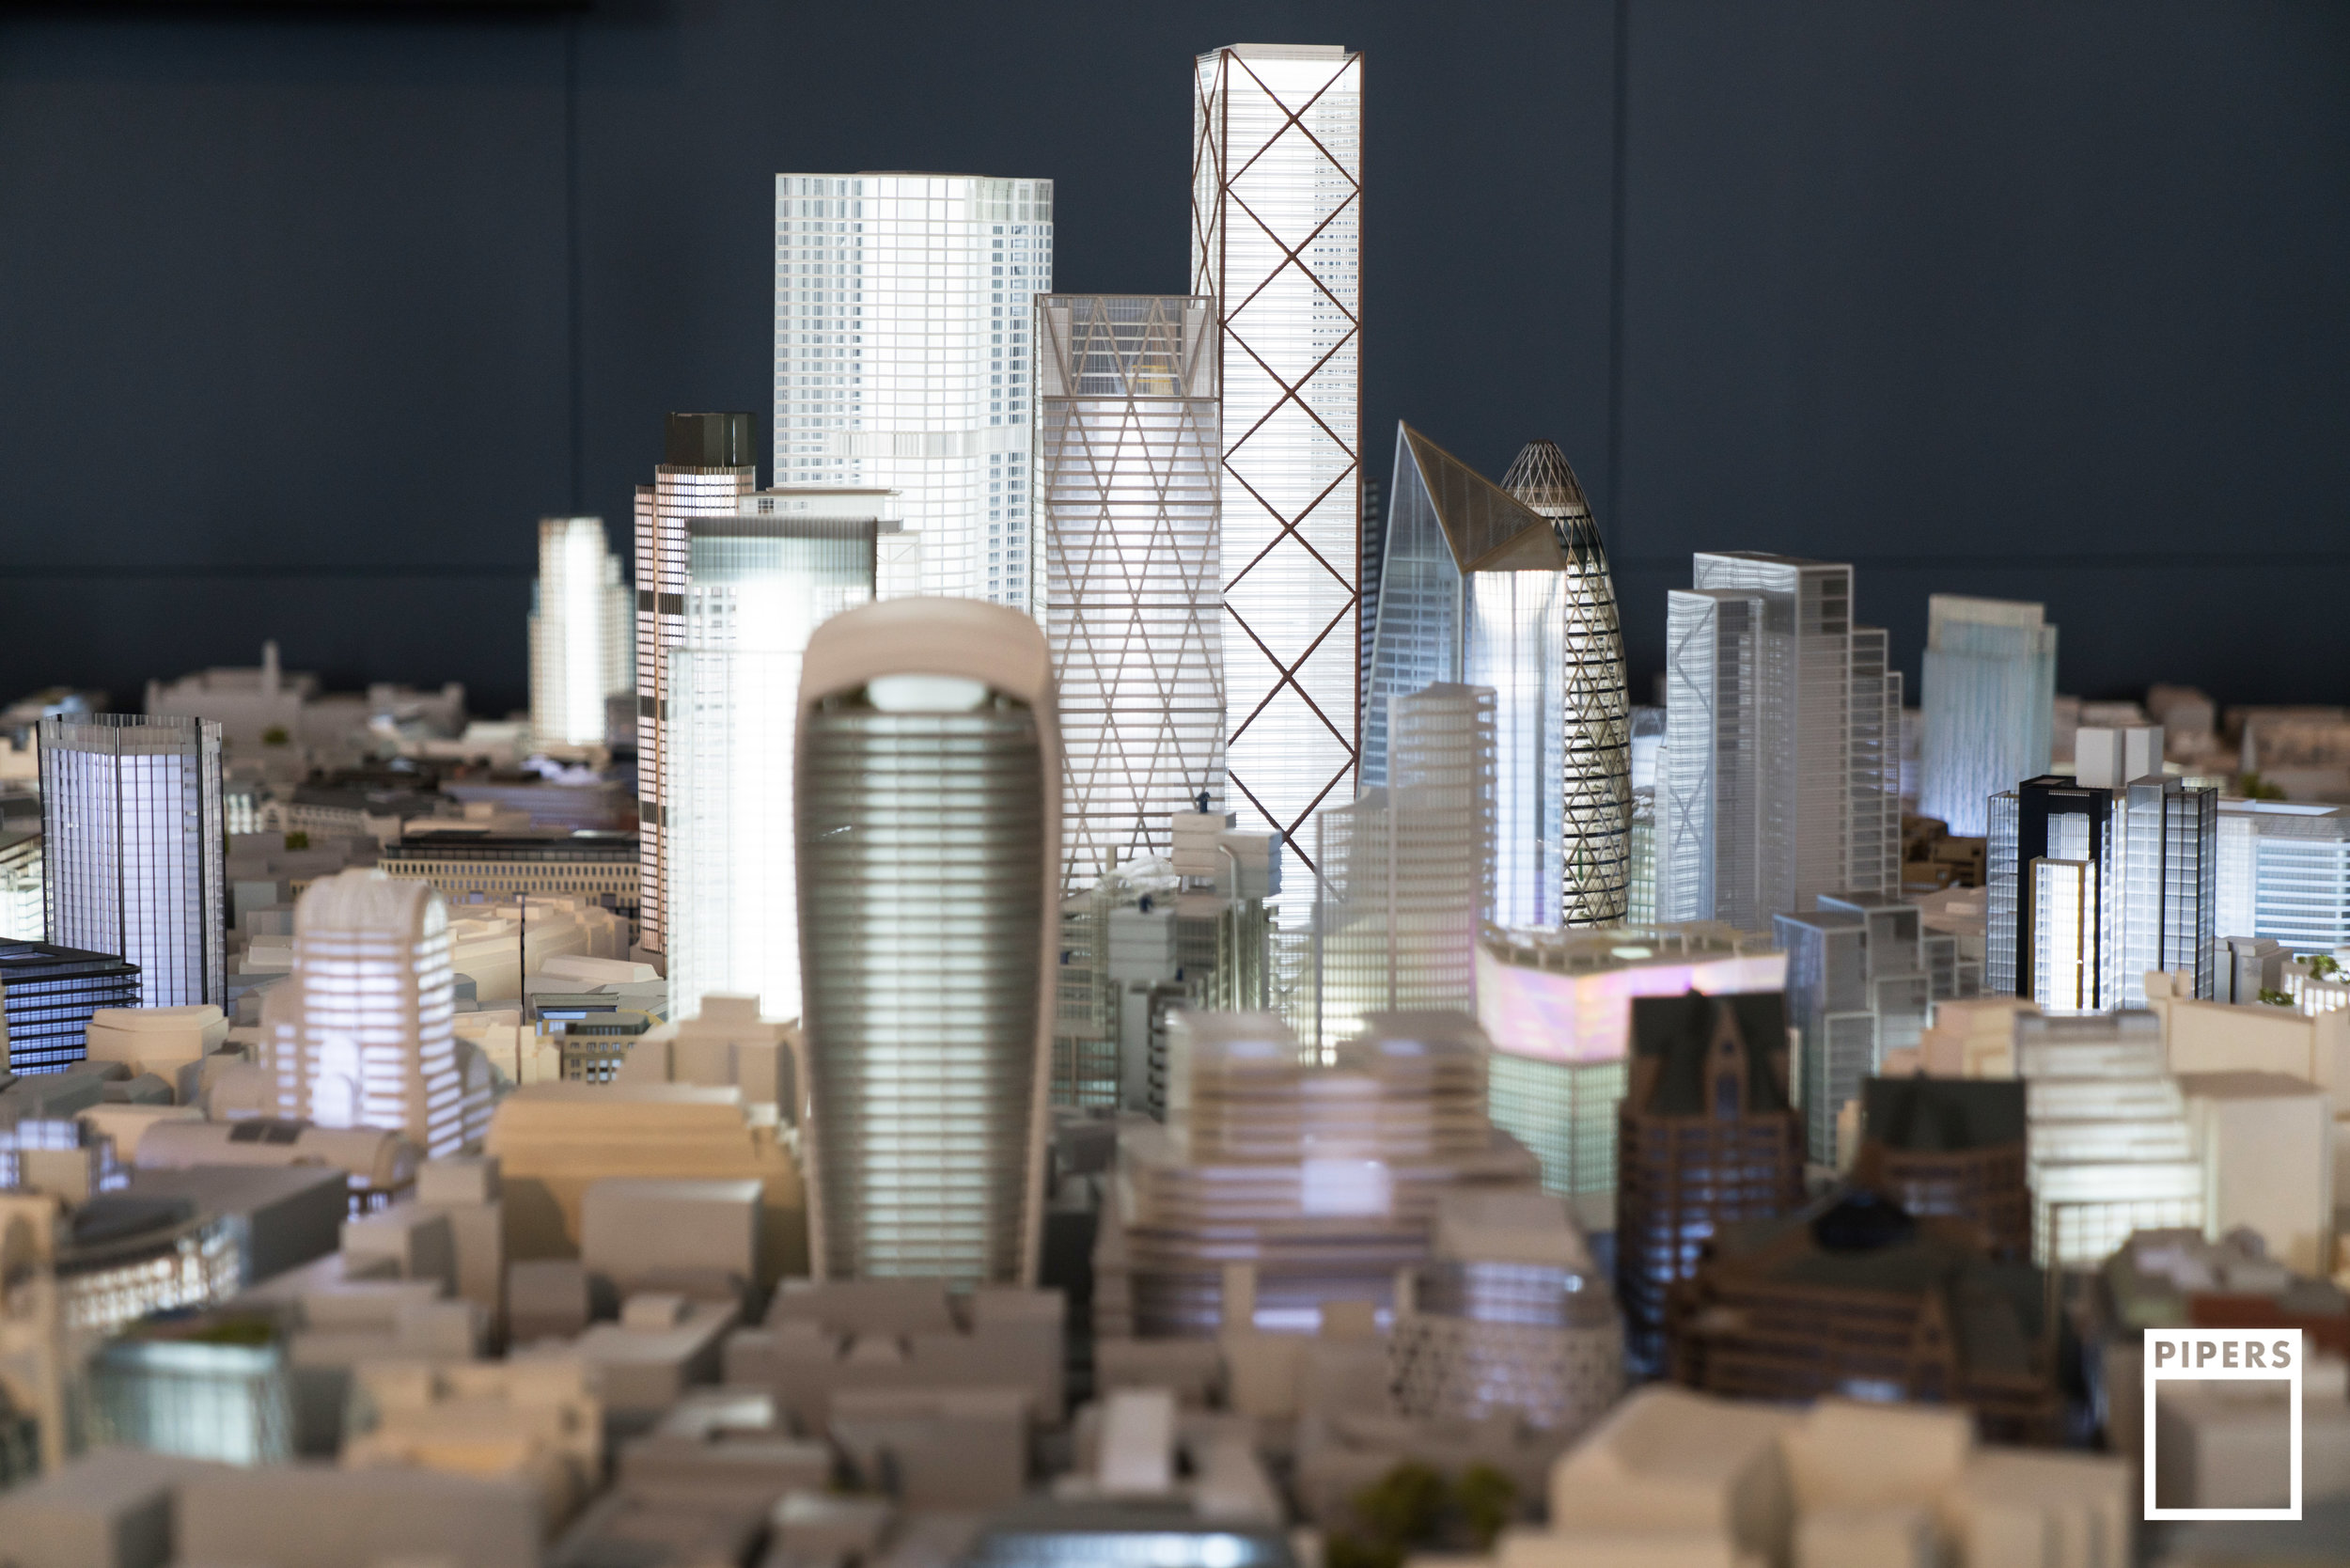 CITY OF LONDON MODEL - 1:500 SCALE